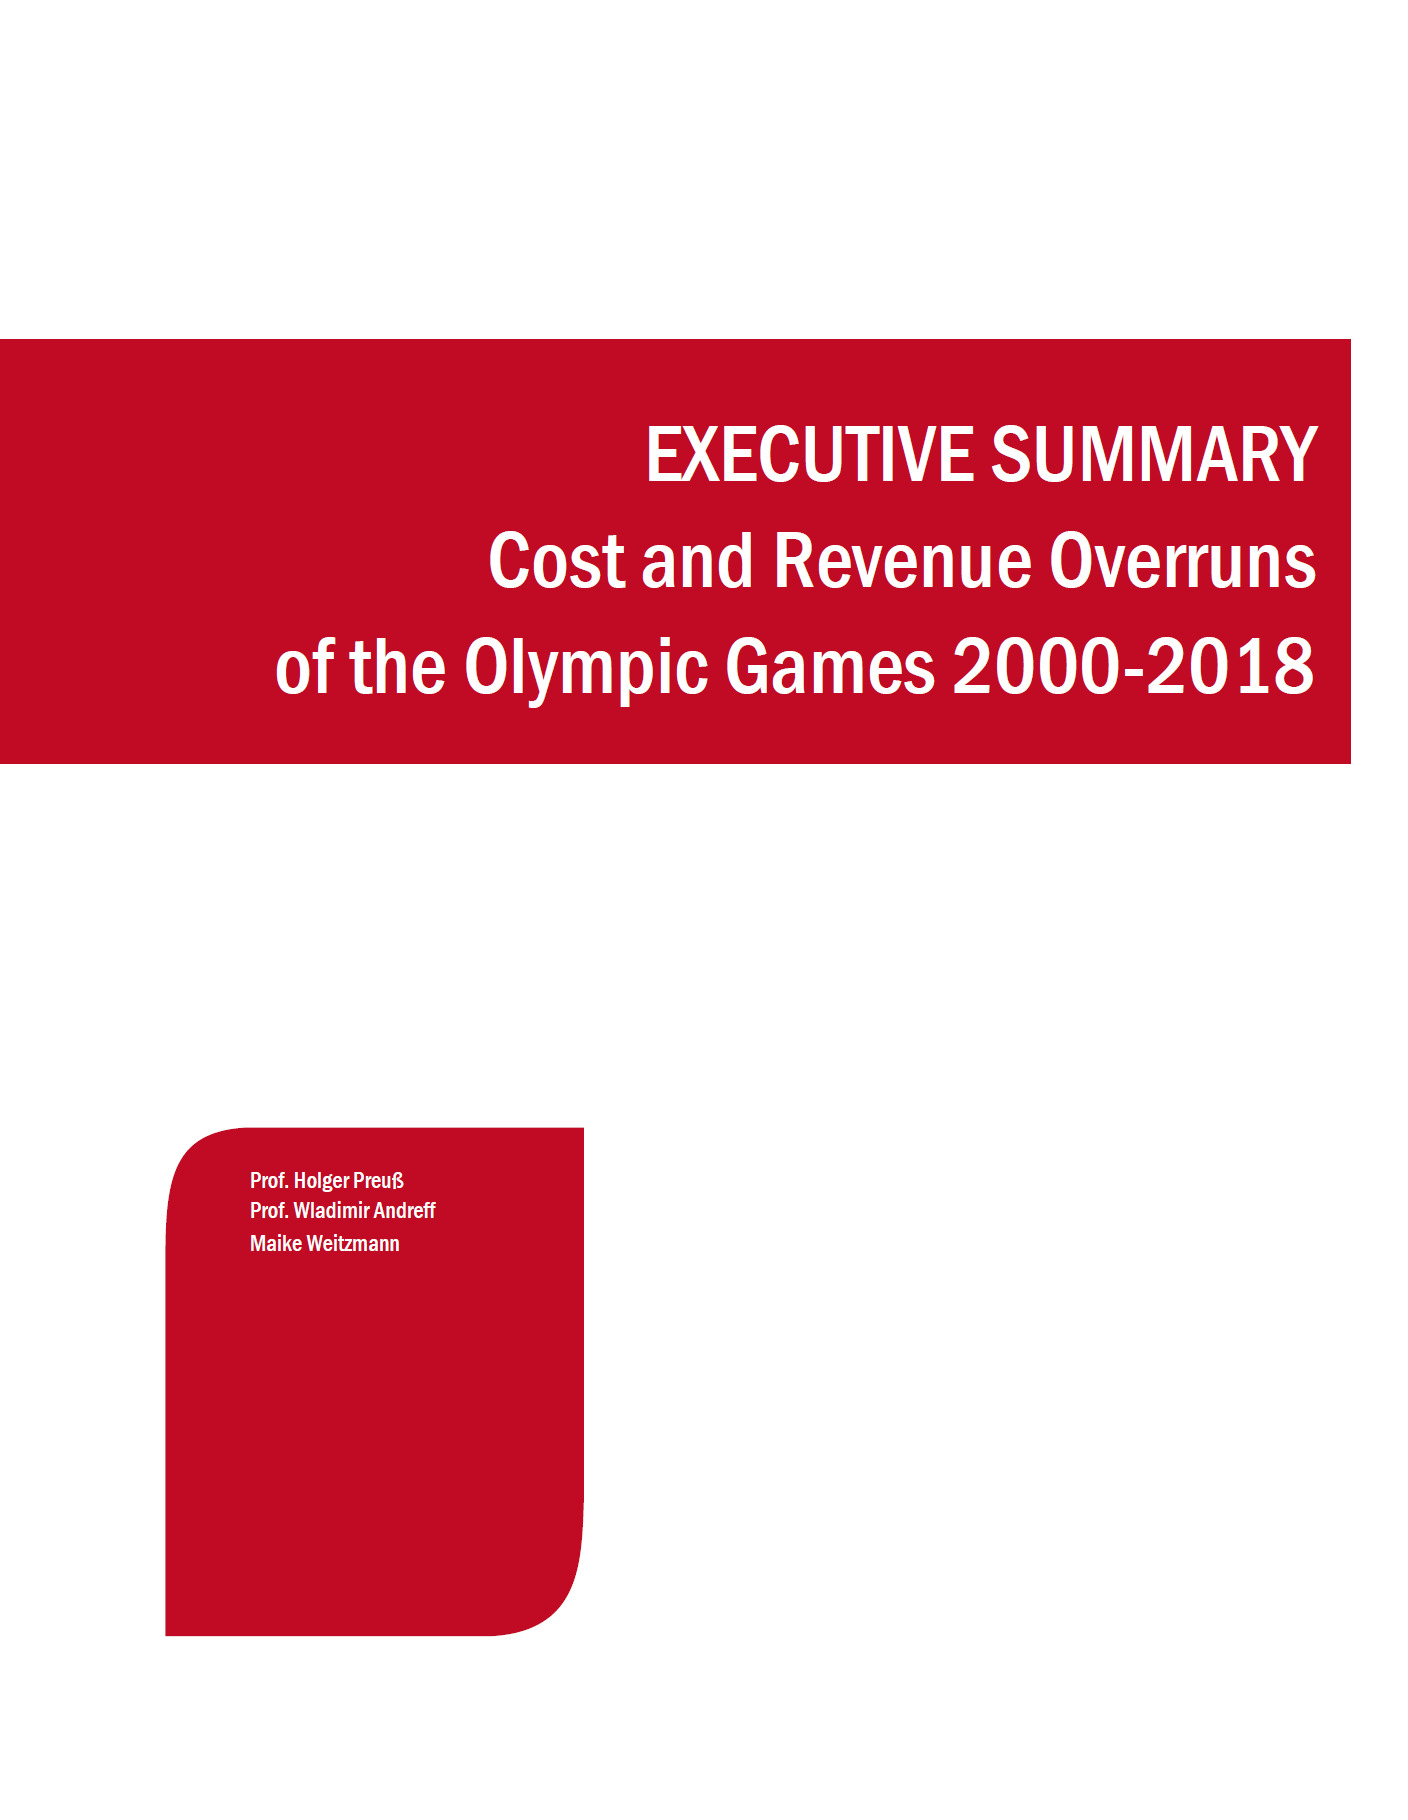 Cost and revenue overruns of the Olympic Games 2000-2018 : executive summary / Holger Preuss, Wladimir Andreff, Maike Weitzmann | Andreff, Wladimir